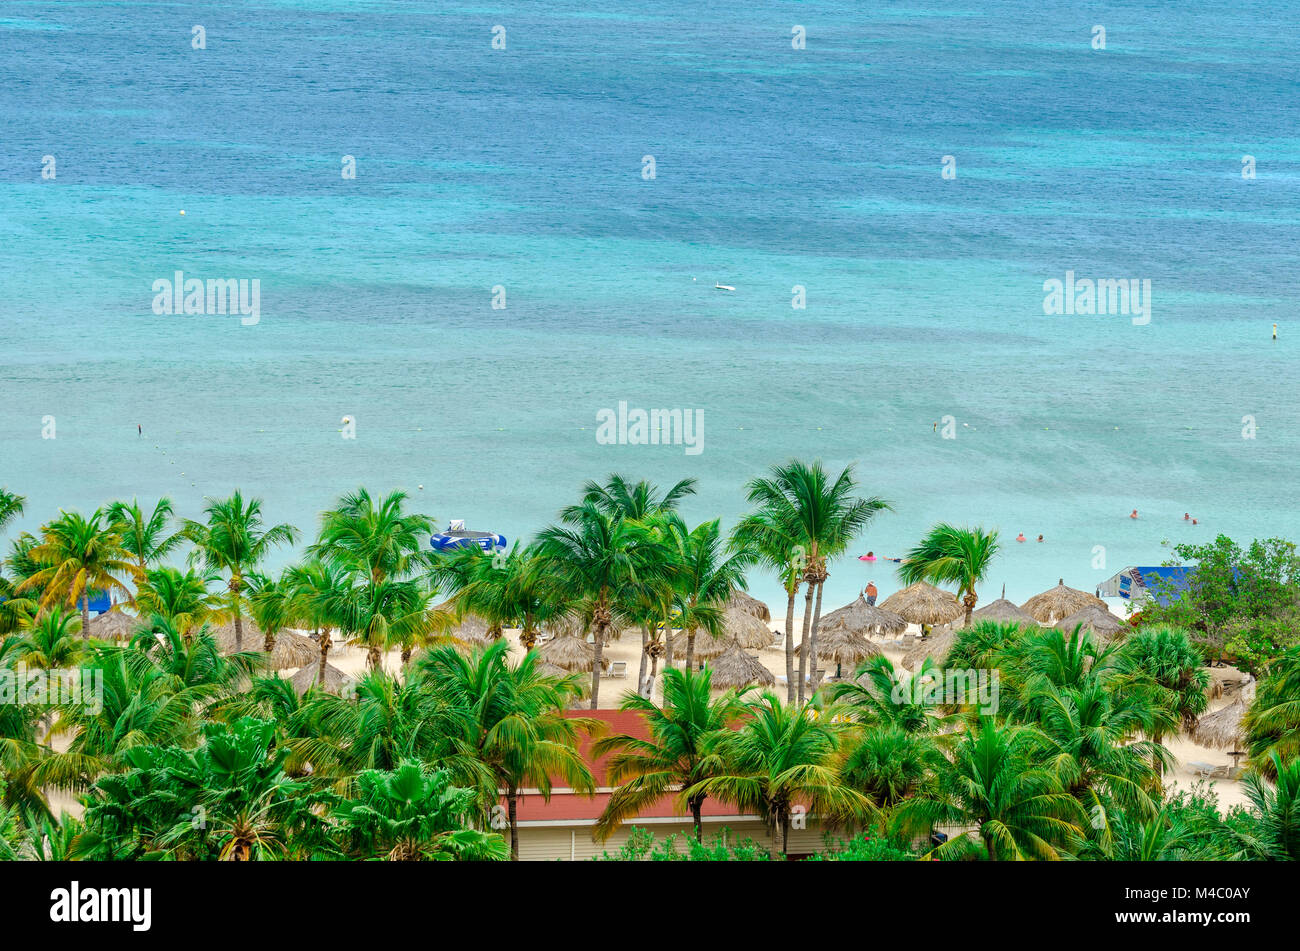 Tourists enjoying the beatiful blue caribbean sea - Stock Image